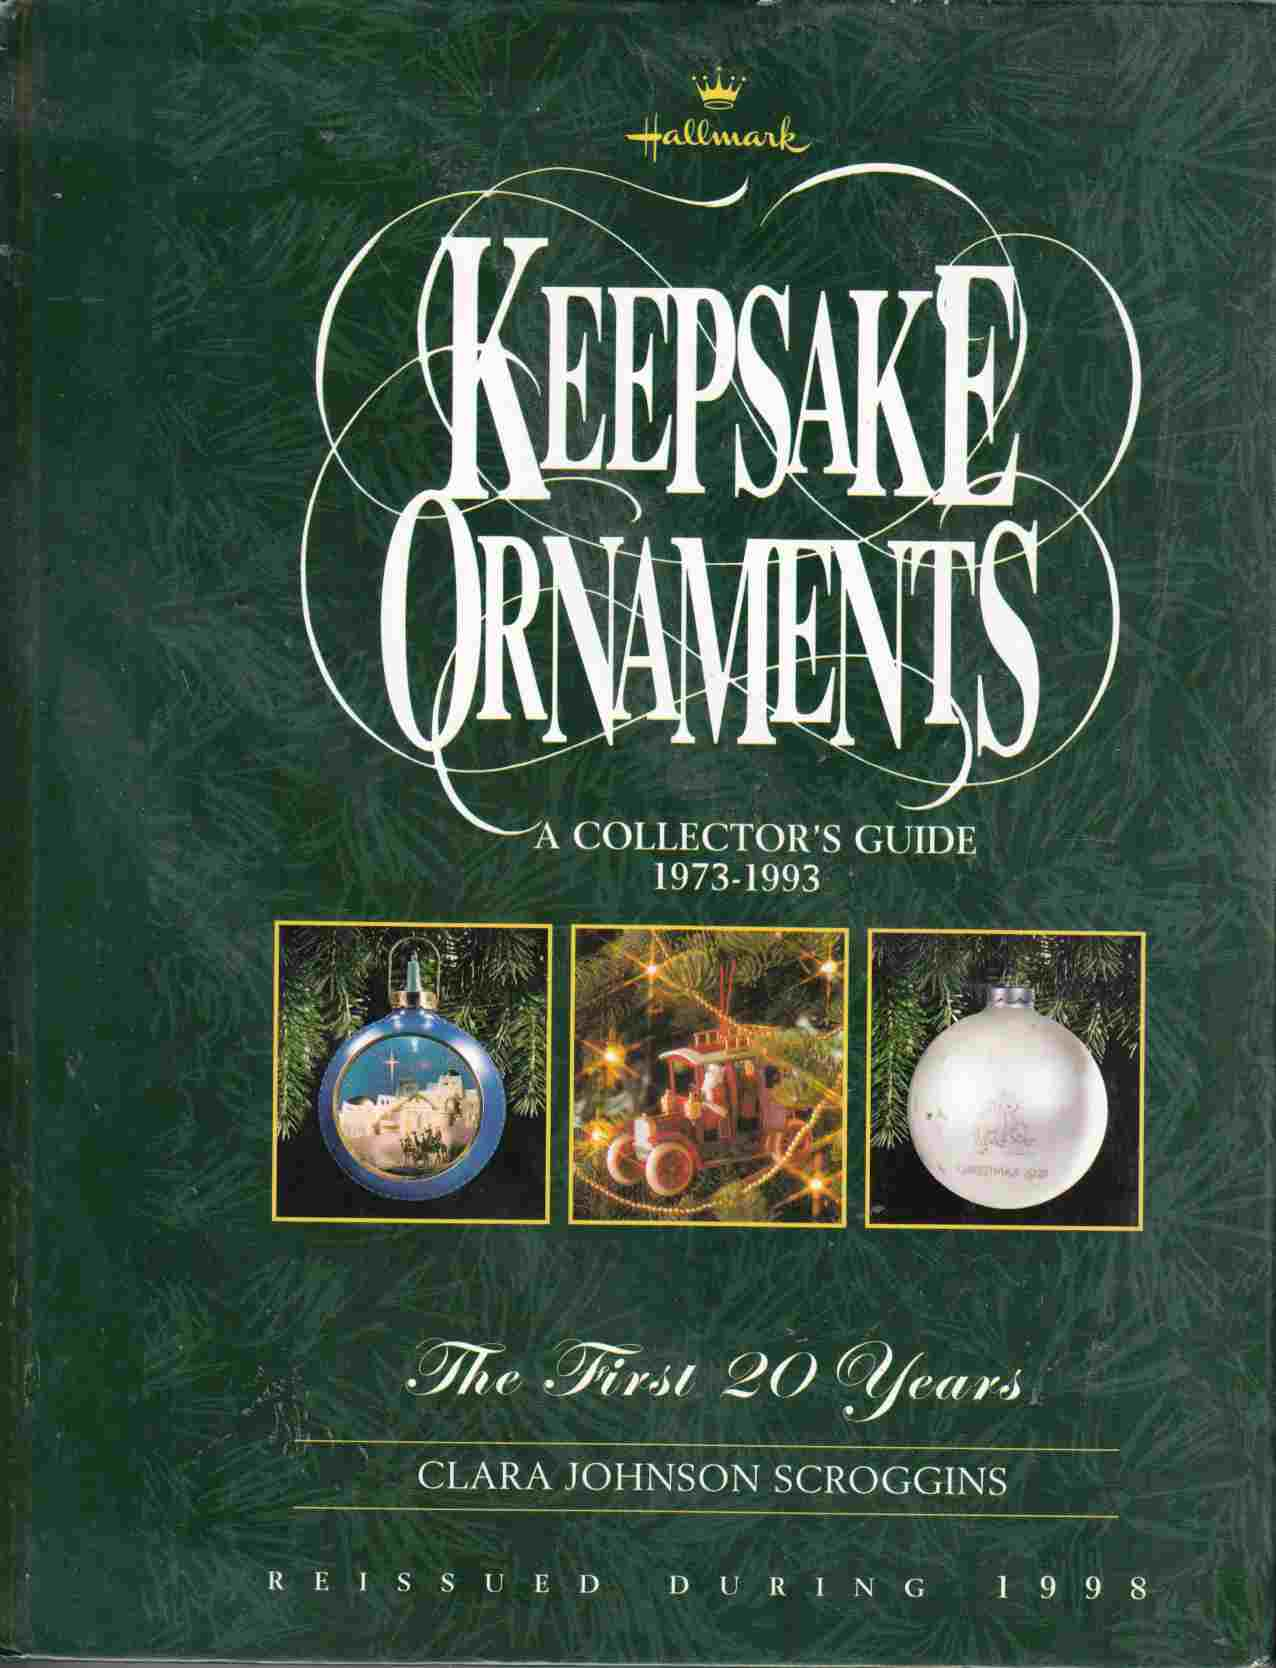 Image for Keepsake Ornaments A Collector's Guide 1973-1993, the First 20 Years